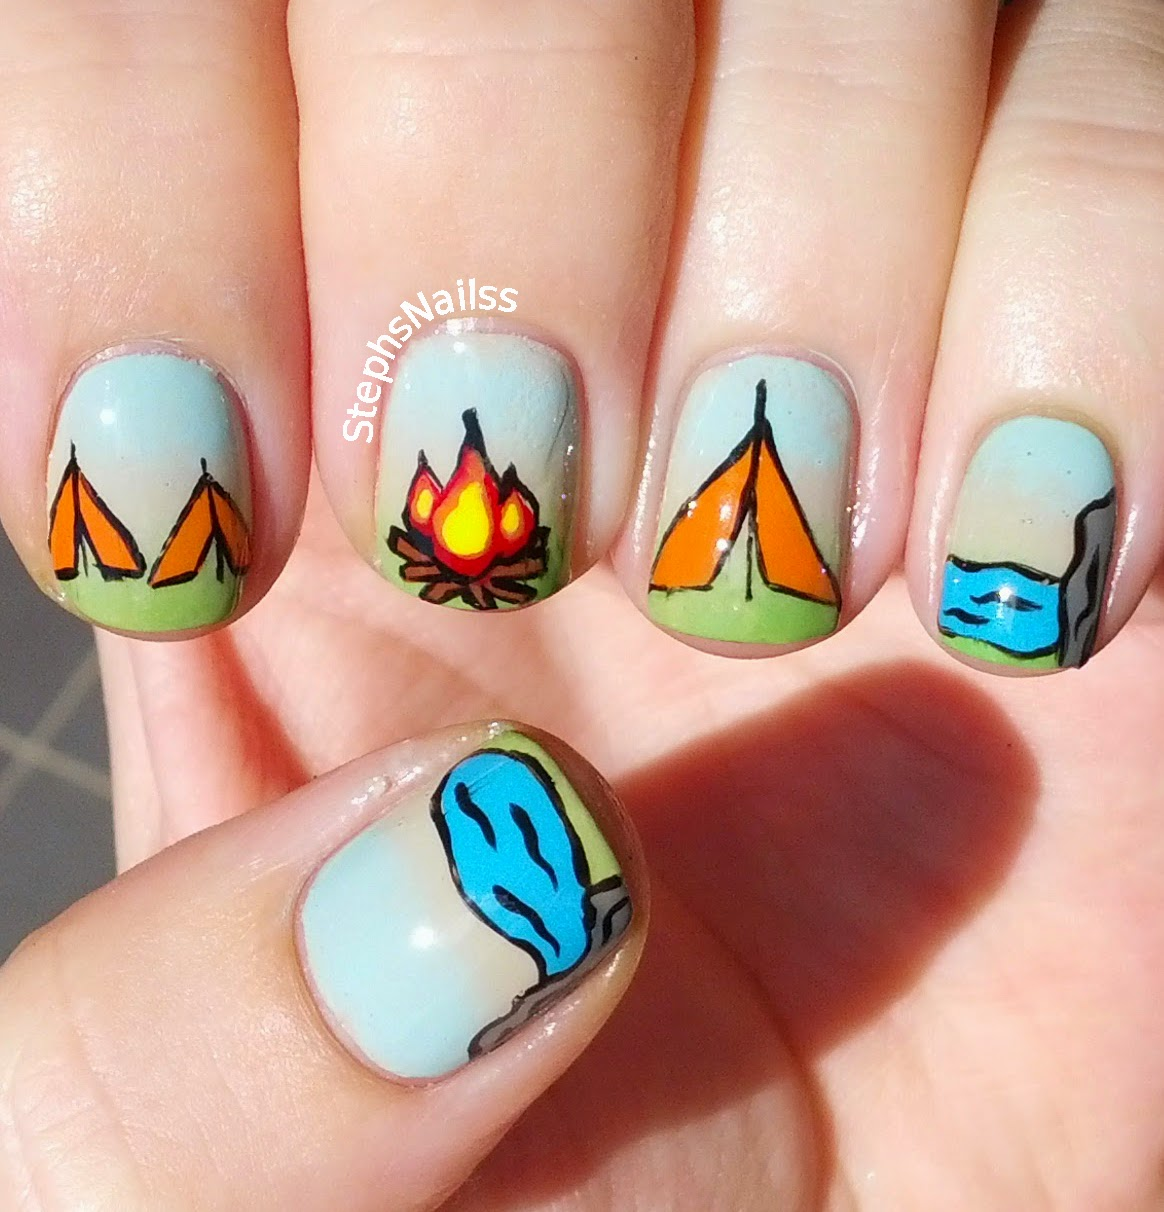 StephsNailss: Camping nails